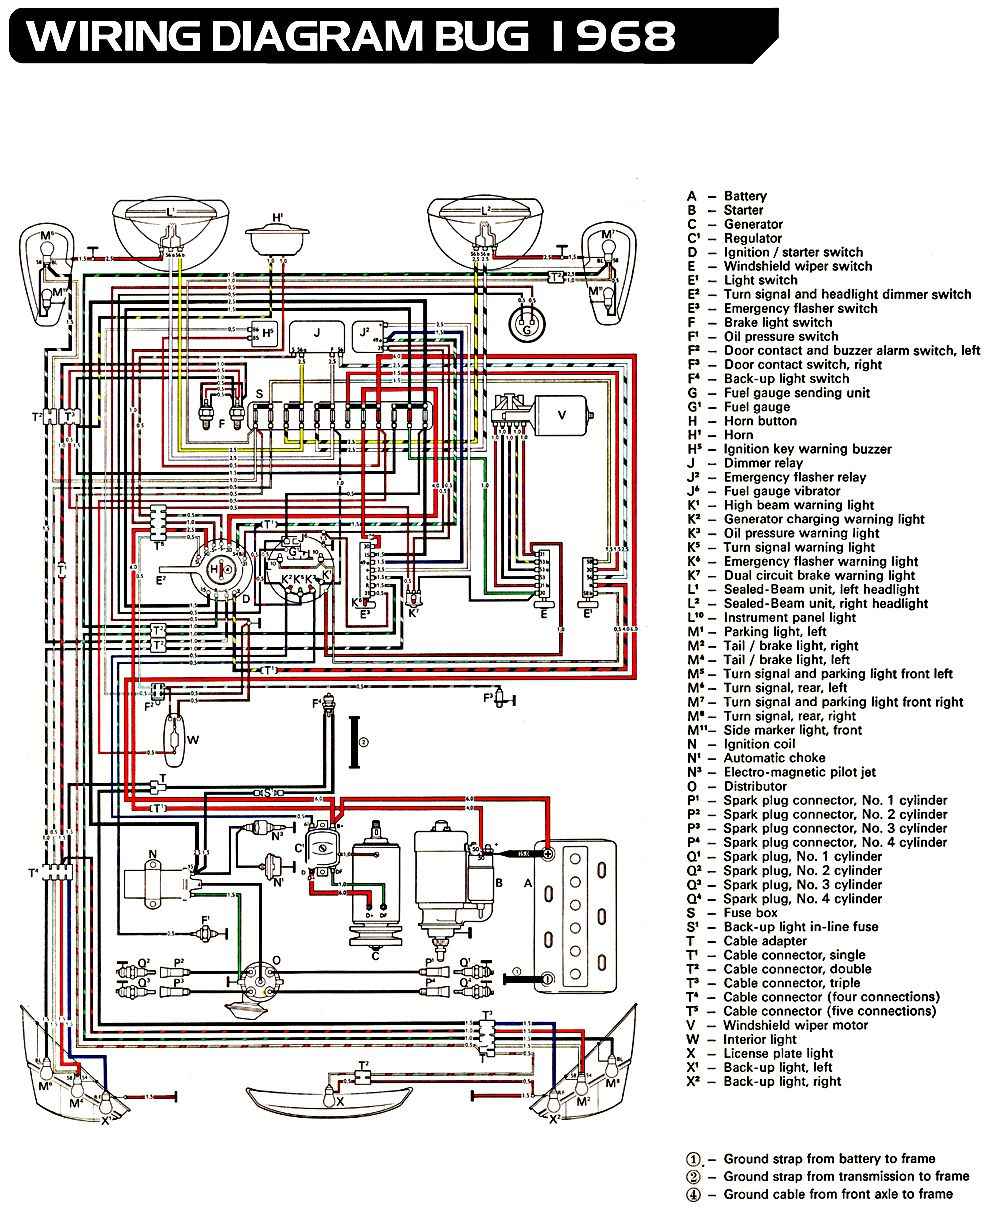 3a1908112d3826270ed5e3be362292bf vw bug ignition wiring diagram 73 vw wiring diagram free vw beetle wiring diagram at bakdesigns.co